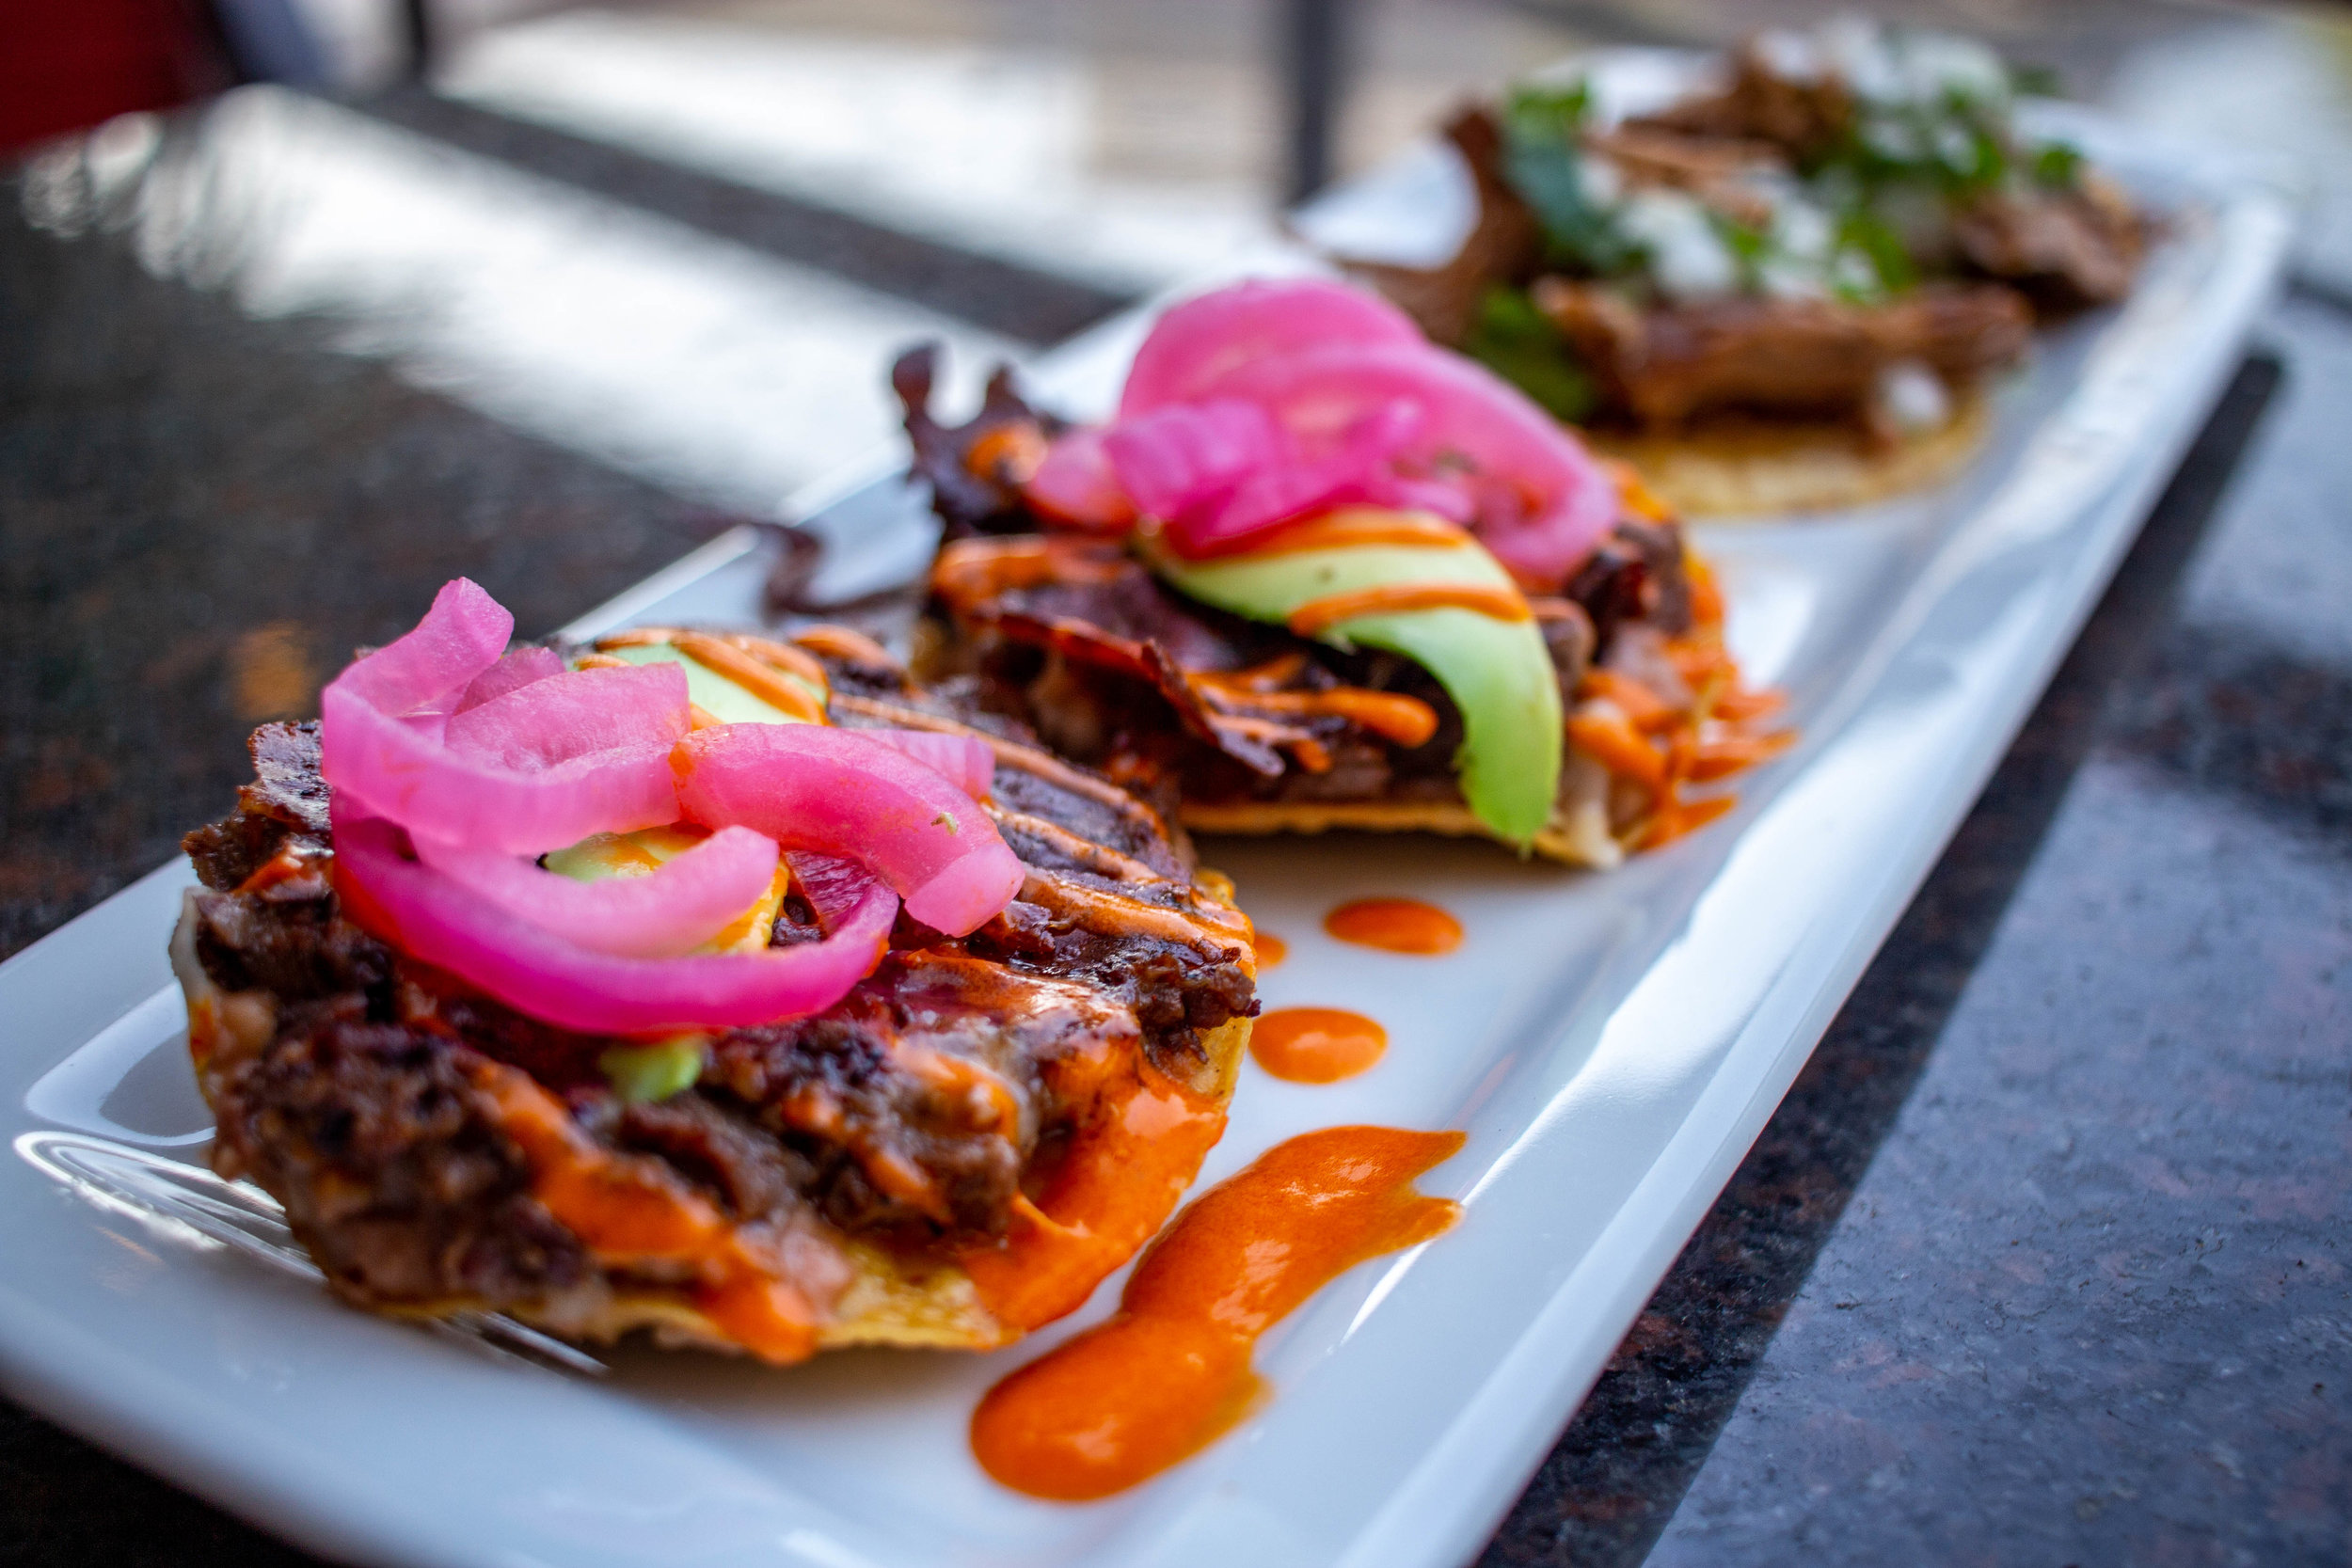 Duo of Volcanes and Carnitas Tacos from Palenque Grill